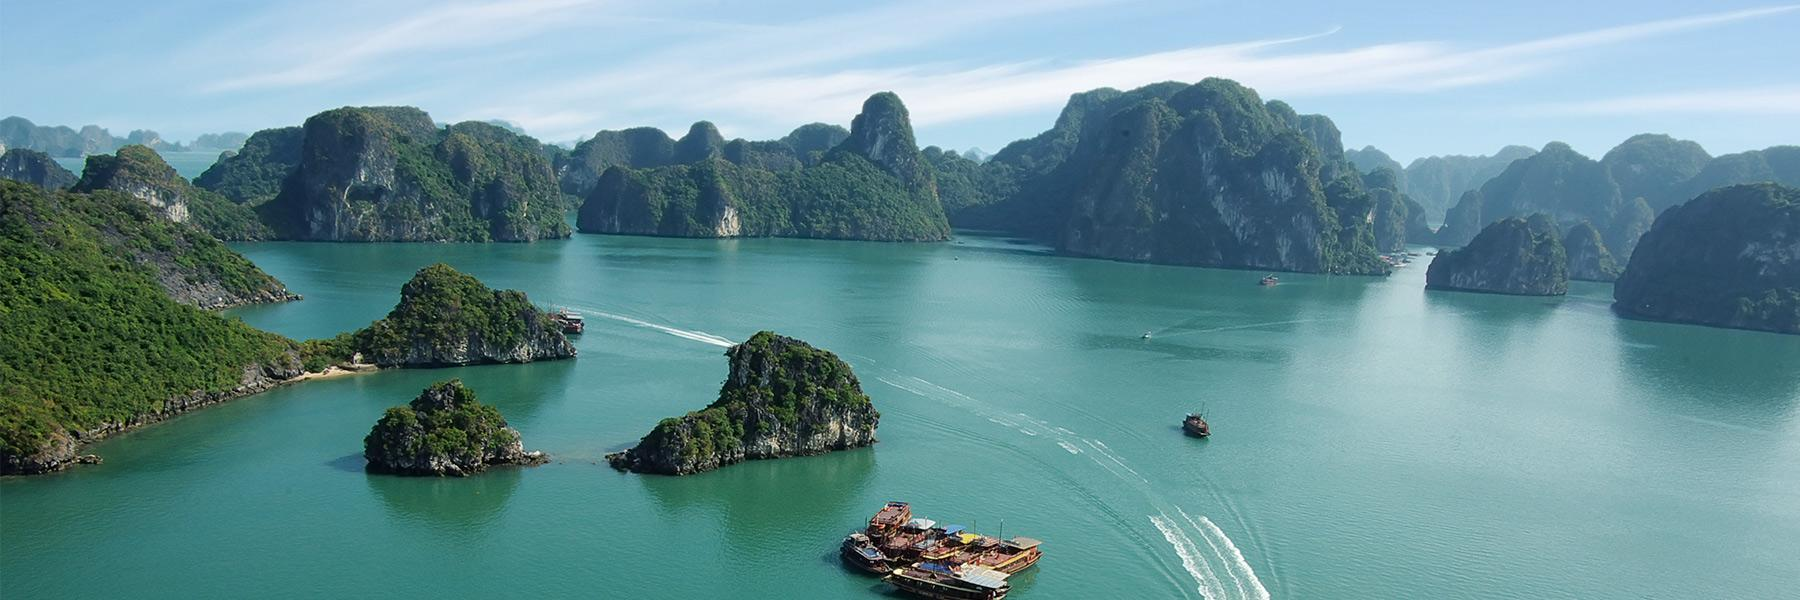 Why Visit Halong Bay?